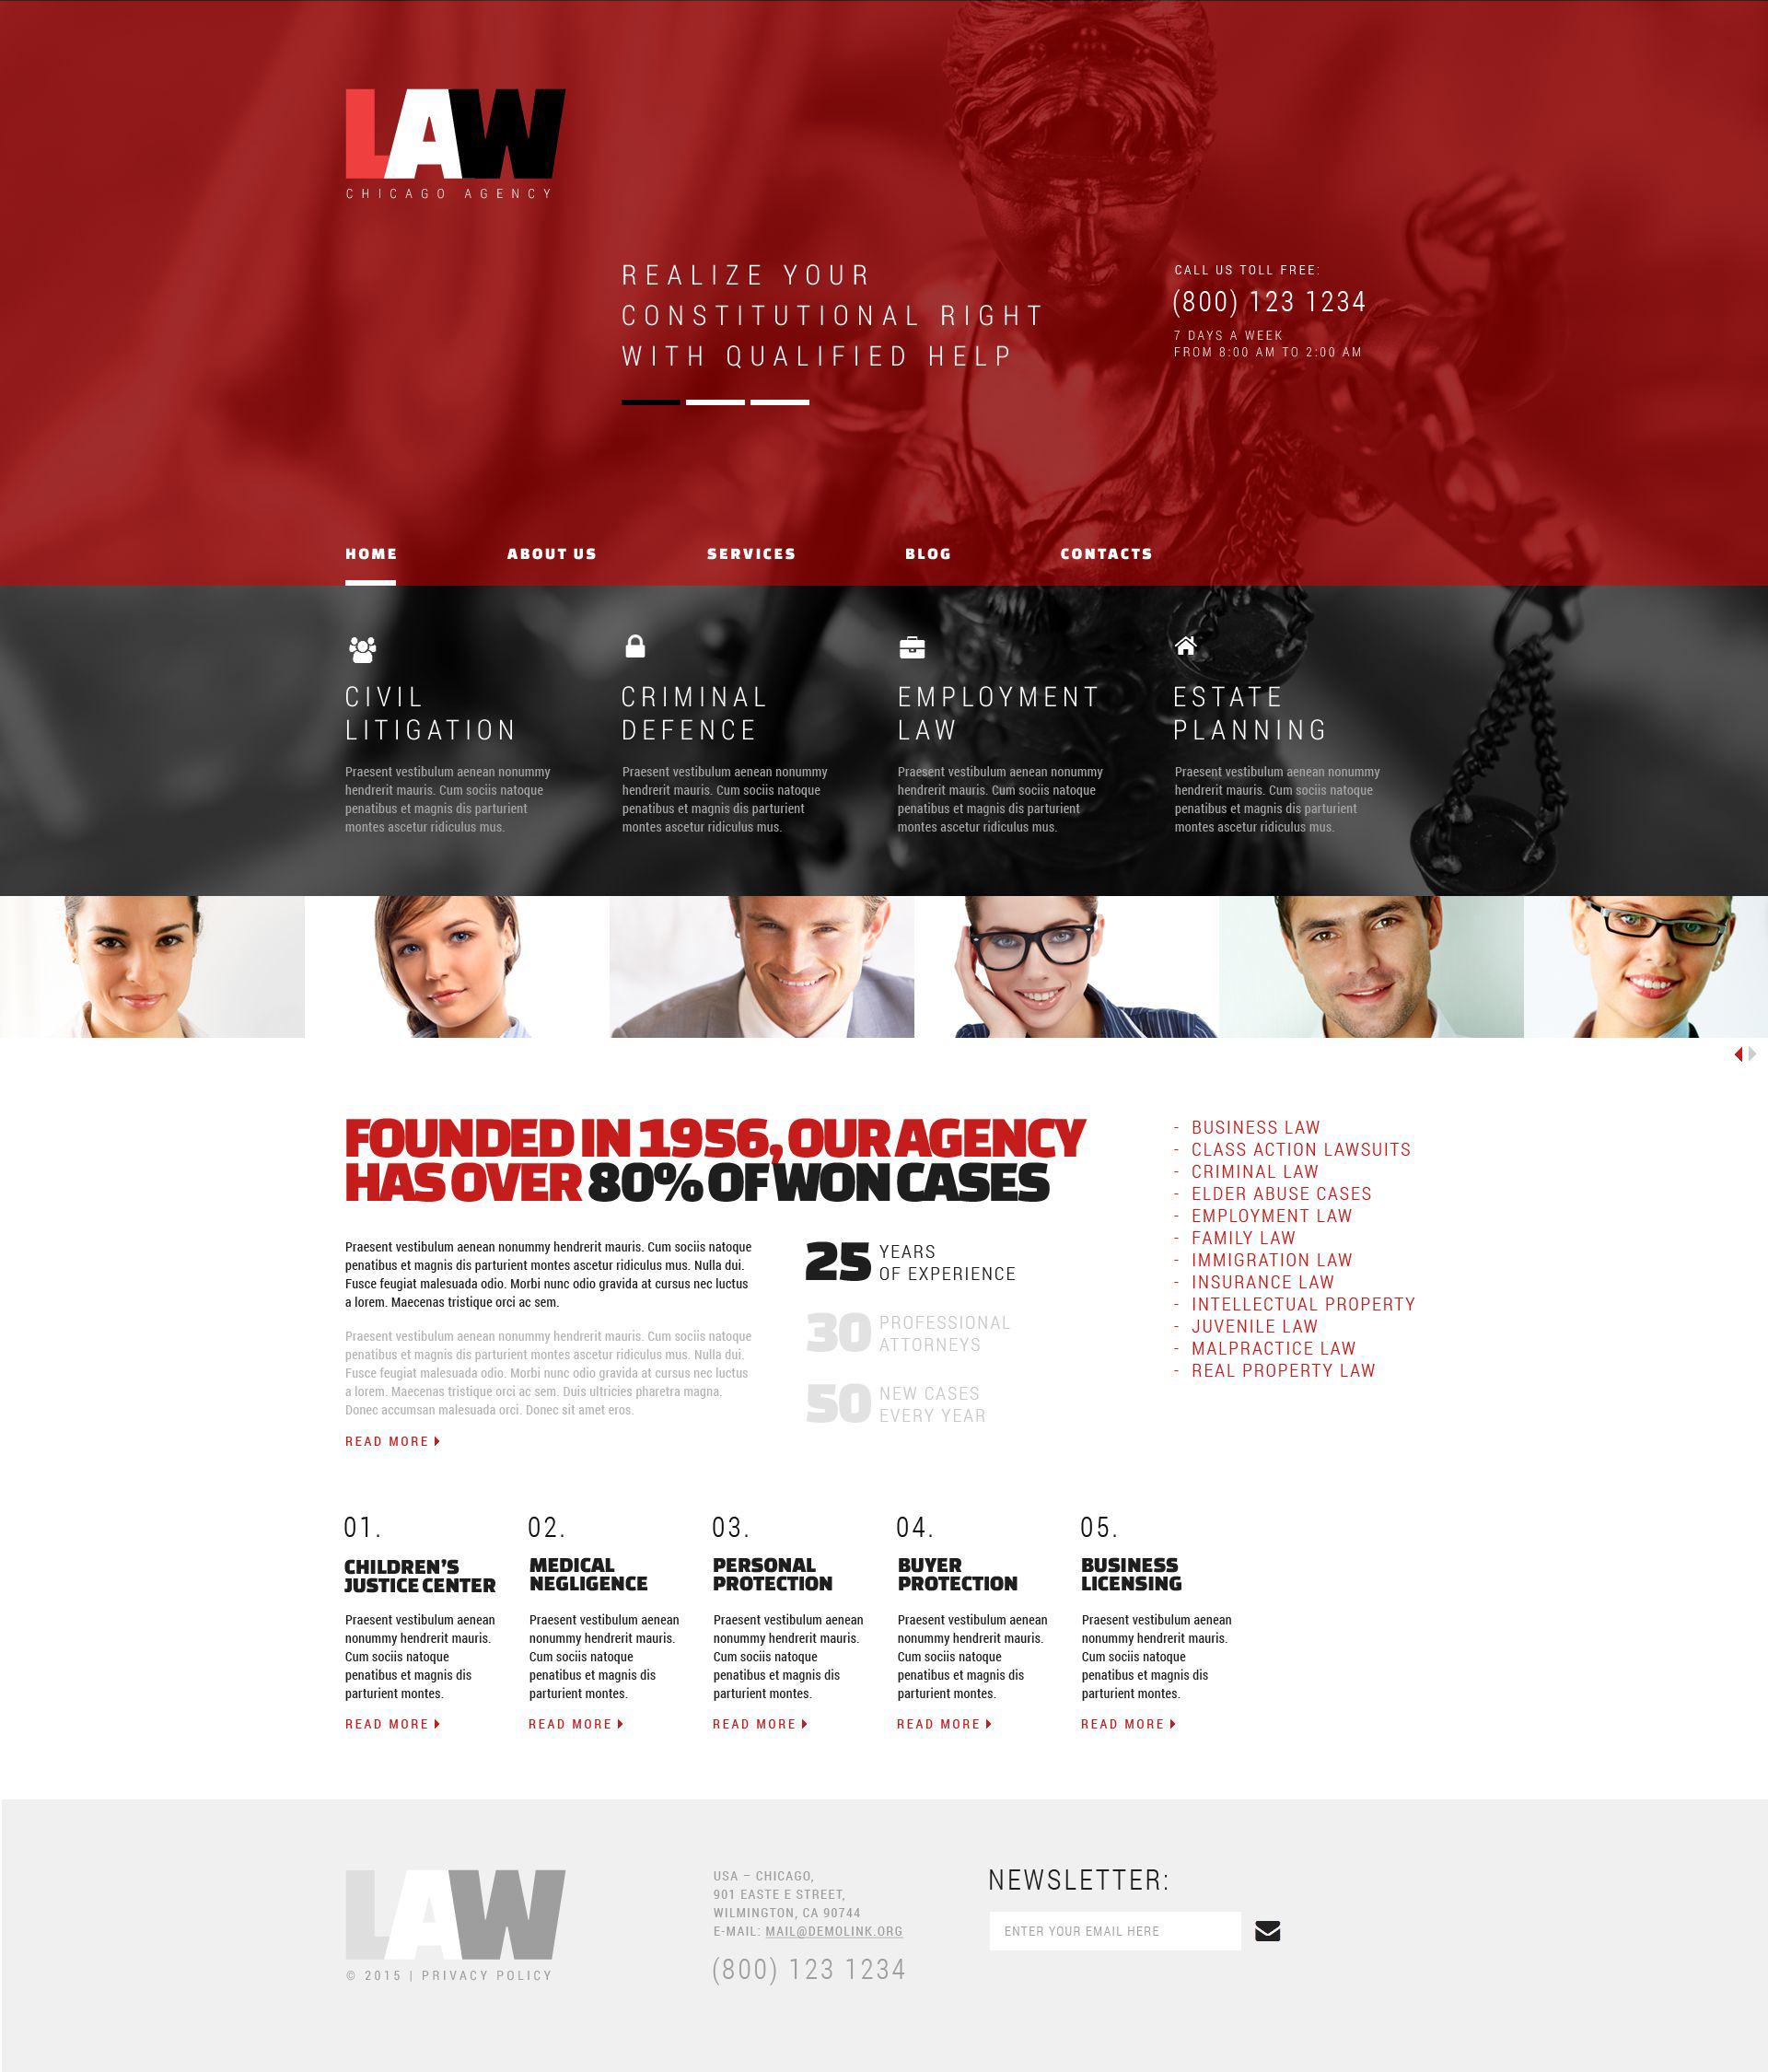 The Law Agency WordPress Design 53371, one of the best WordPress themes of its kind (business, most popular), also known as law agency WordPress template, constitution WordPress template, rules WordPress template, case WordPress template, business WordPress template, affair WordPress template, practice WordPress template, experience WordPress template, membership WordPress template, work WordPress template, articles WordPress template, responsibility WordPress template, biography WordPress template, hobbies WordPress template, testimonials WordPress template, client WordPress template, clients WordPress template, partners WordPress template, services WordPress template, specials WordPress template, help WordPress template, support WordPress template, advocacy WordPress template, maintenance WordPress template, protect and related with law agency, constitution, rules, case, business, affair, practice, experience, membership, work, articles, responsibility, biography, hobbies, testimonials, client, clients, partners, services, specials, help, support, advocacy, maintenance, protect, etc.